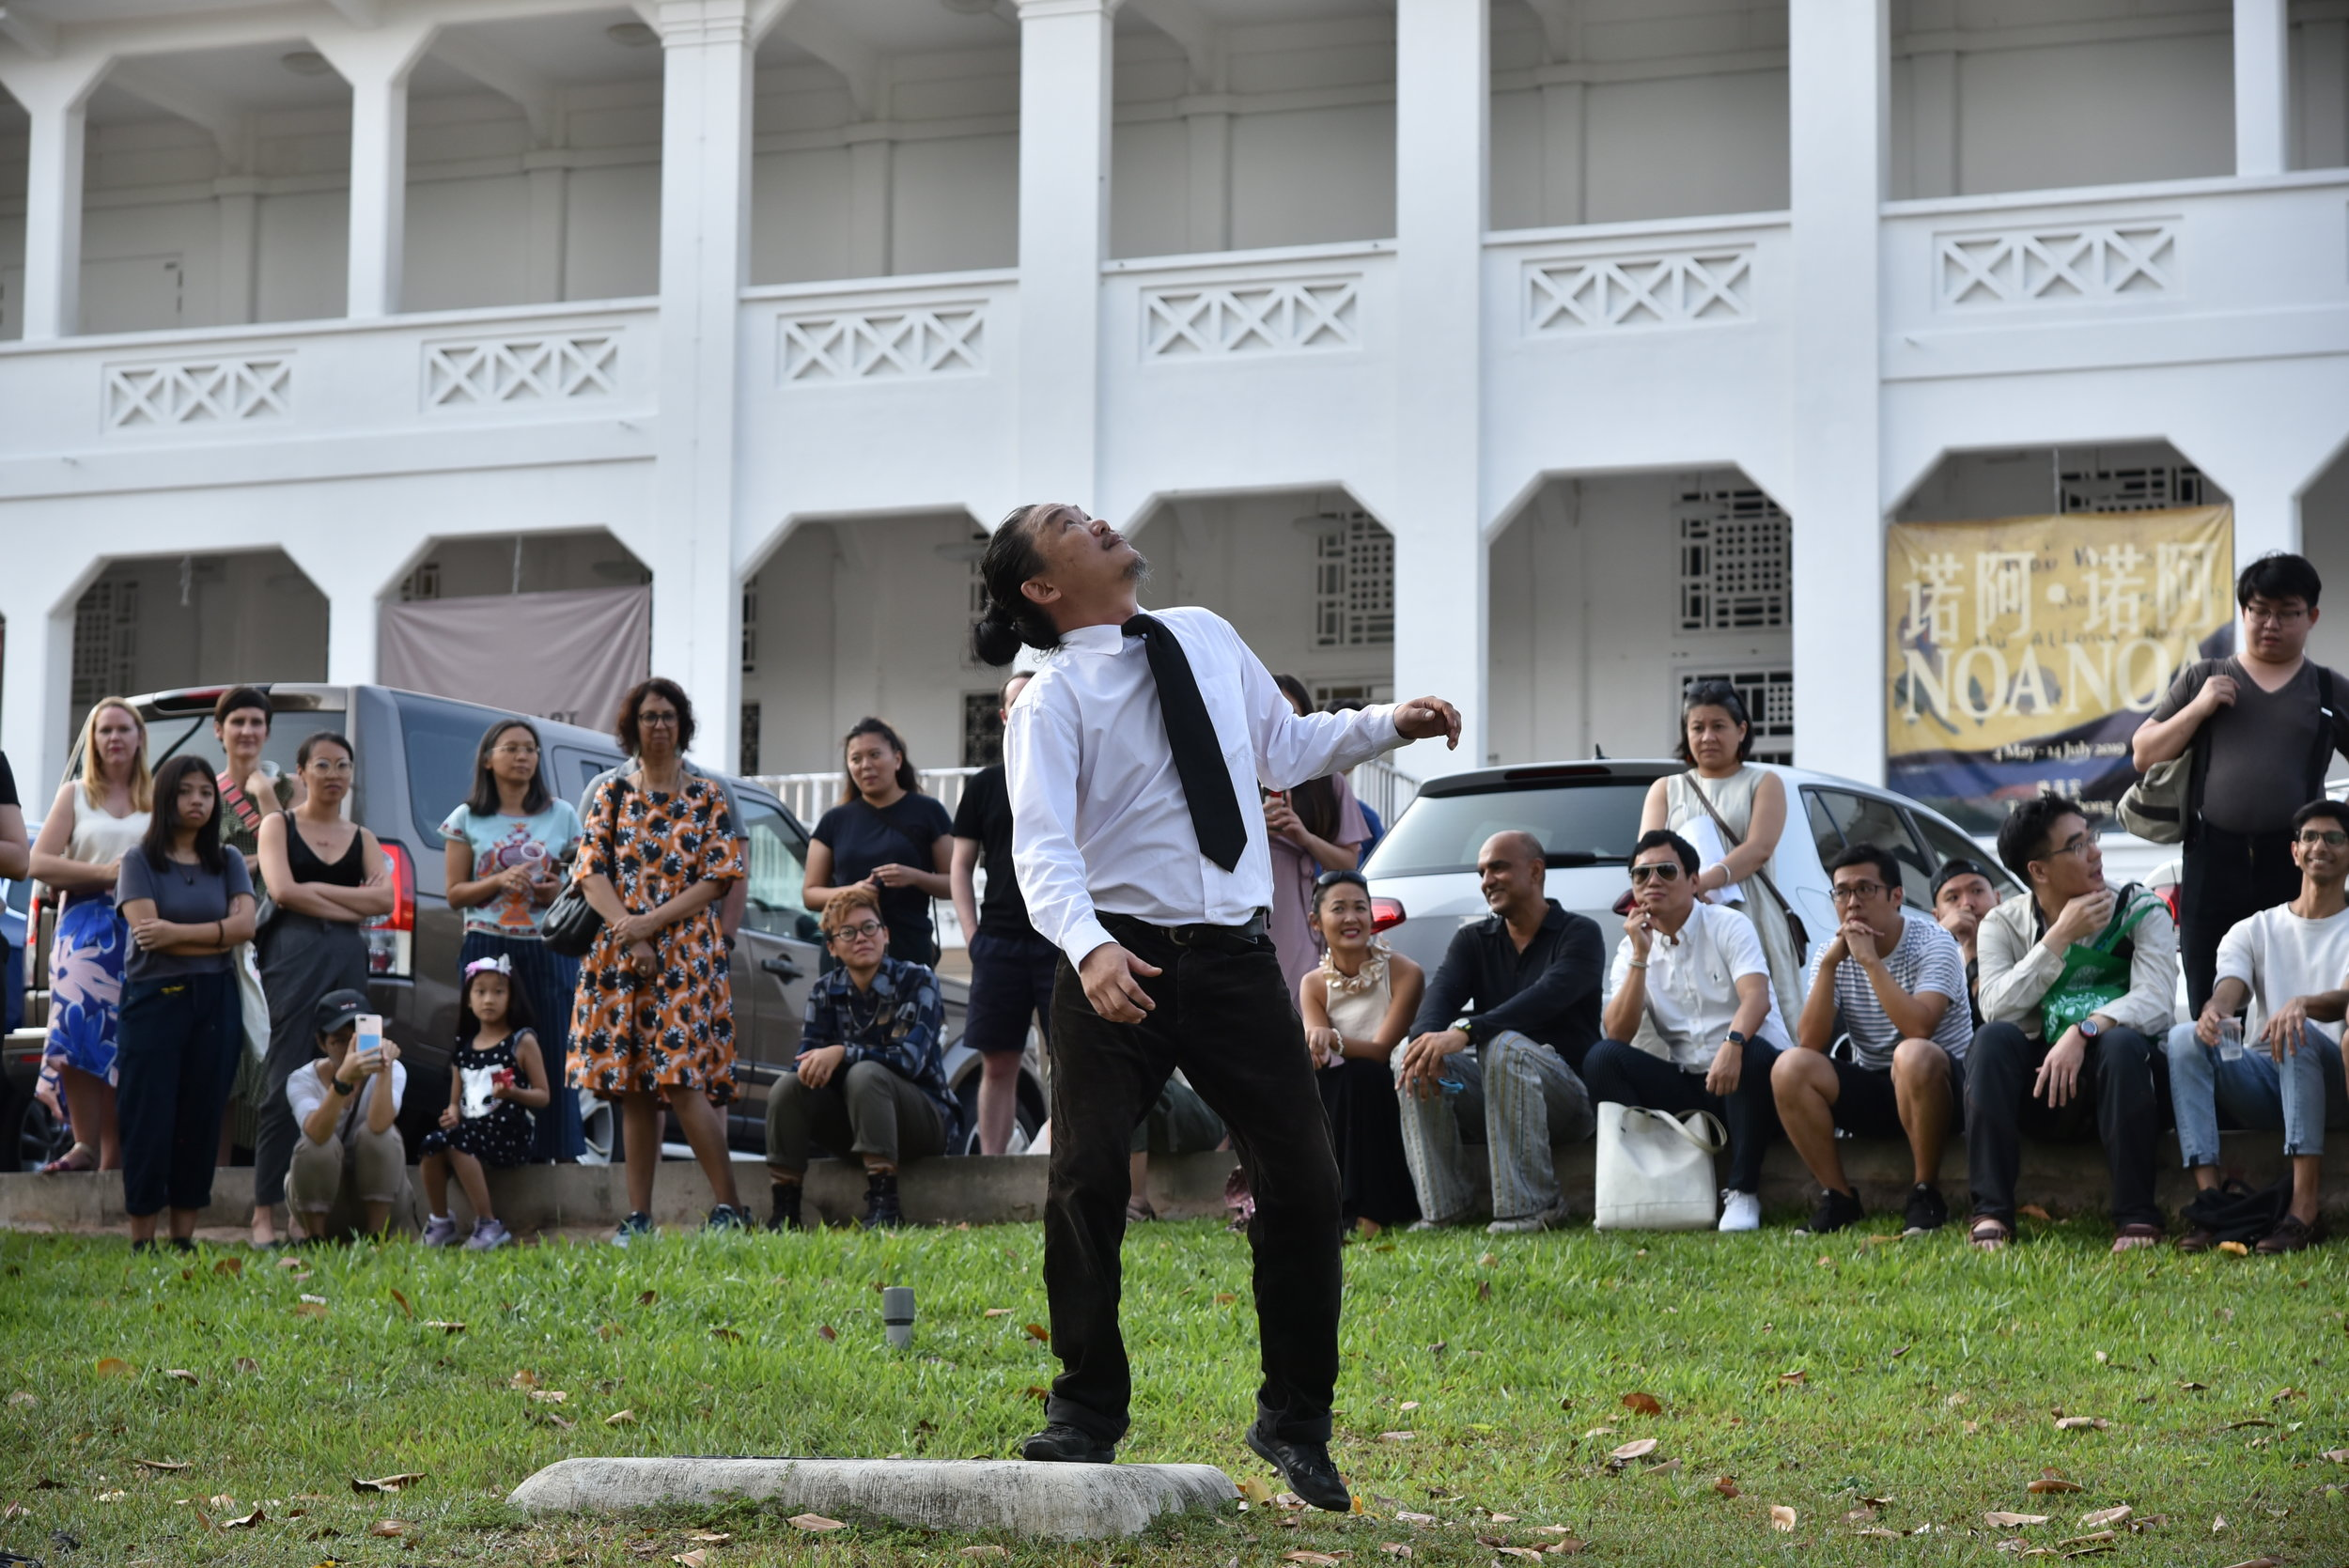 Jeremy Hiah performing 'Coward' at Gillman Barracks on 27 July 2019. Image courtesy of the artist and Chan + Hori Contemporary.